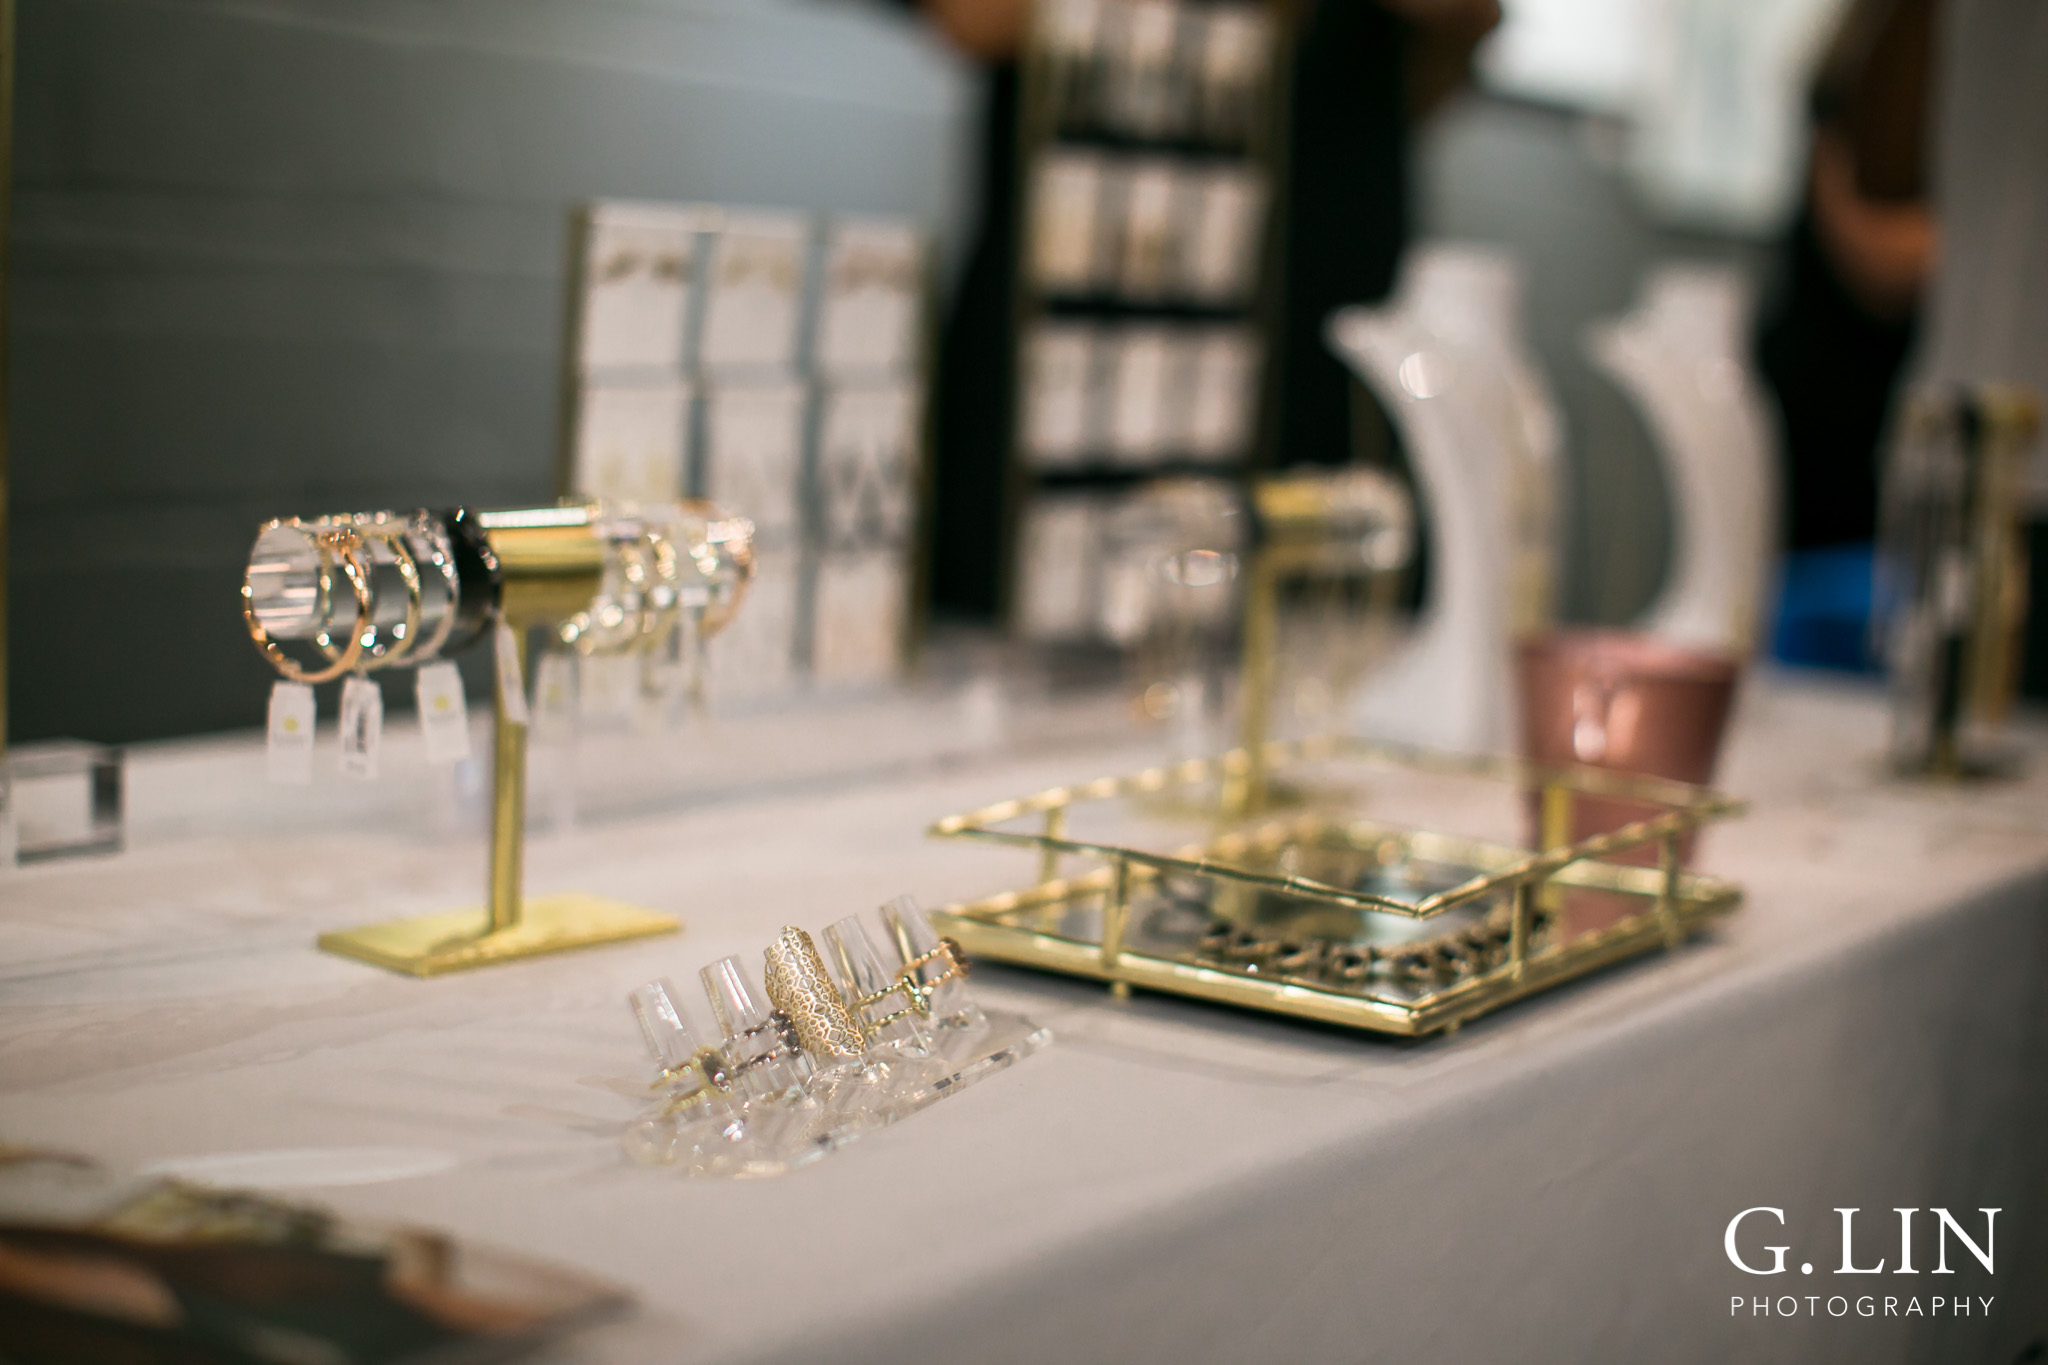 Raleigh Event Photographer | G. Lin Photography | Close up of jewelry on table